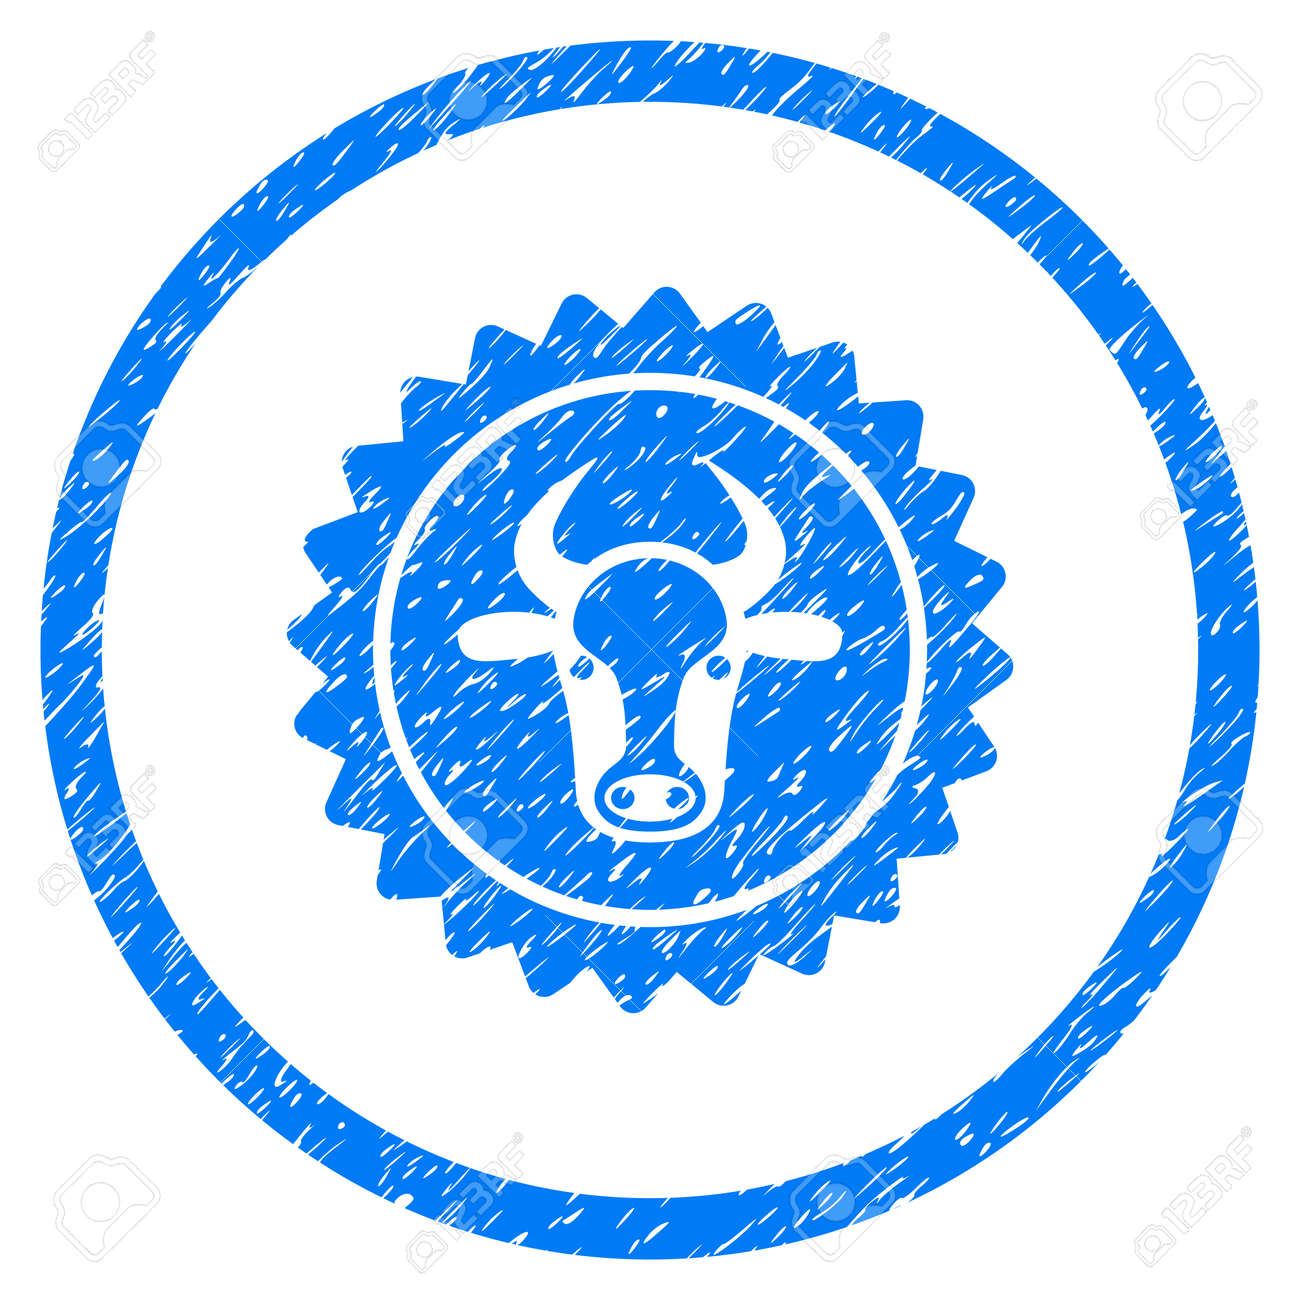 Beef Certificate Seal Grainy Textured Icon Inside Circle For